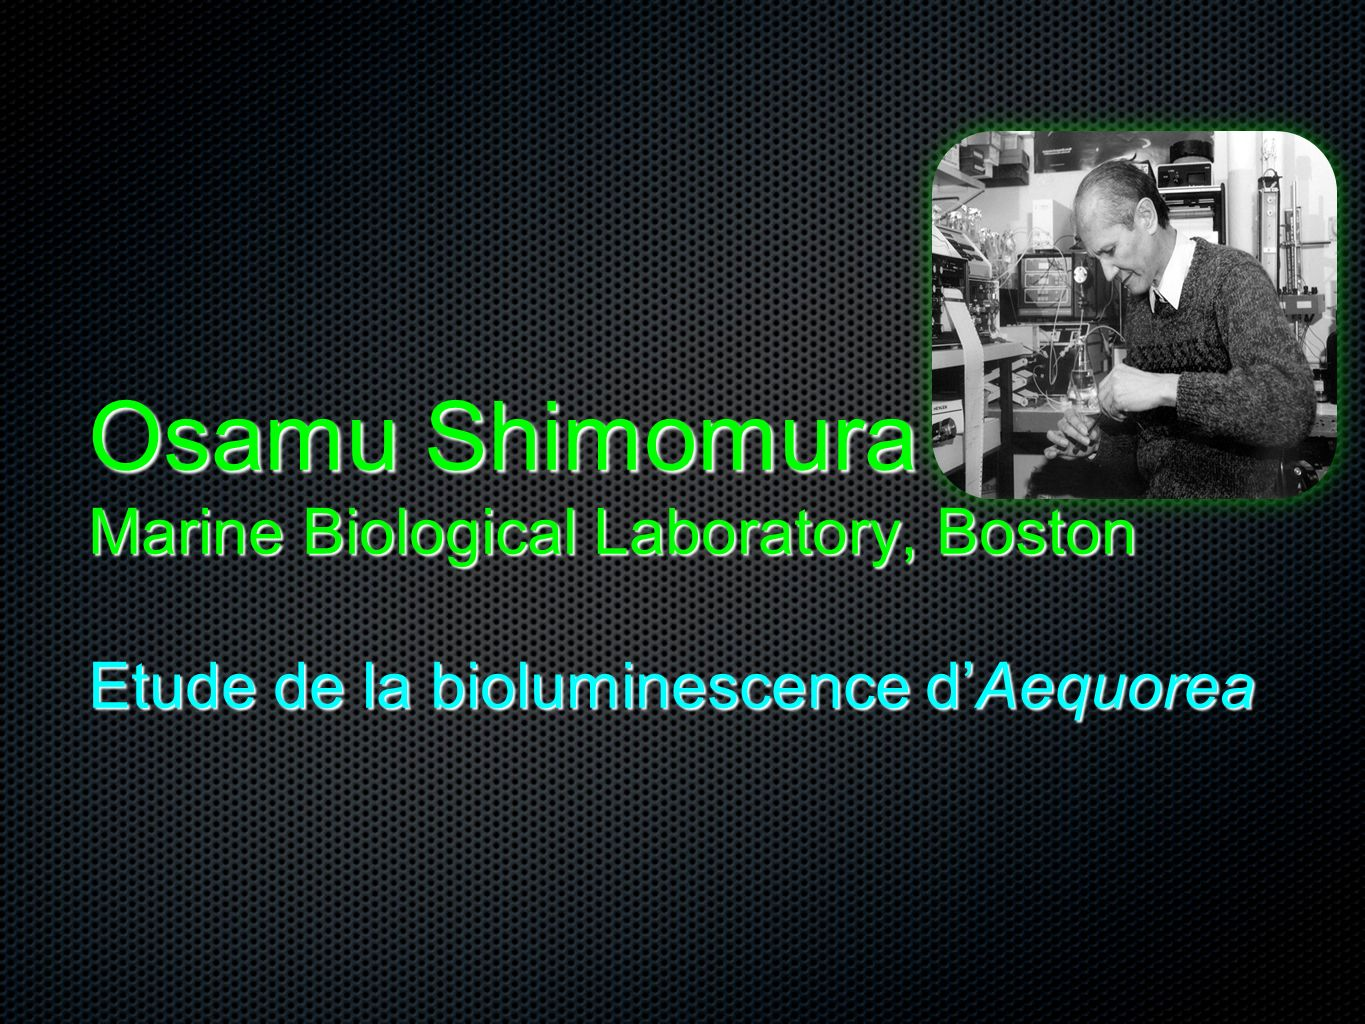 Osamu Shimomura Marine Biological Laboratory, Boston Etude de la bioluminescence d'Aequorea